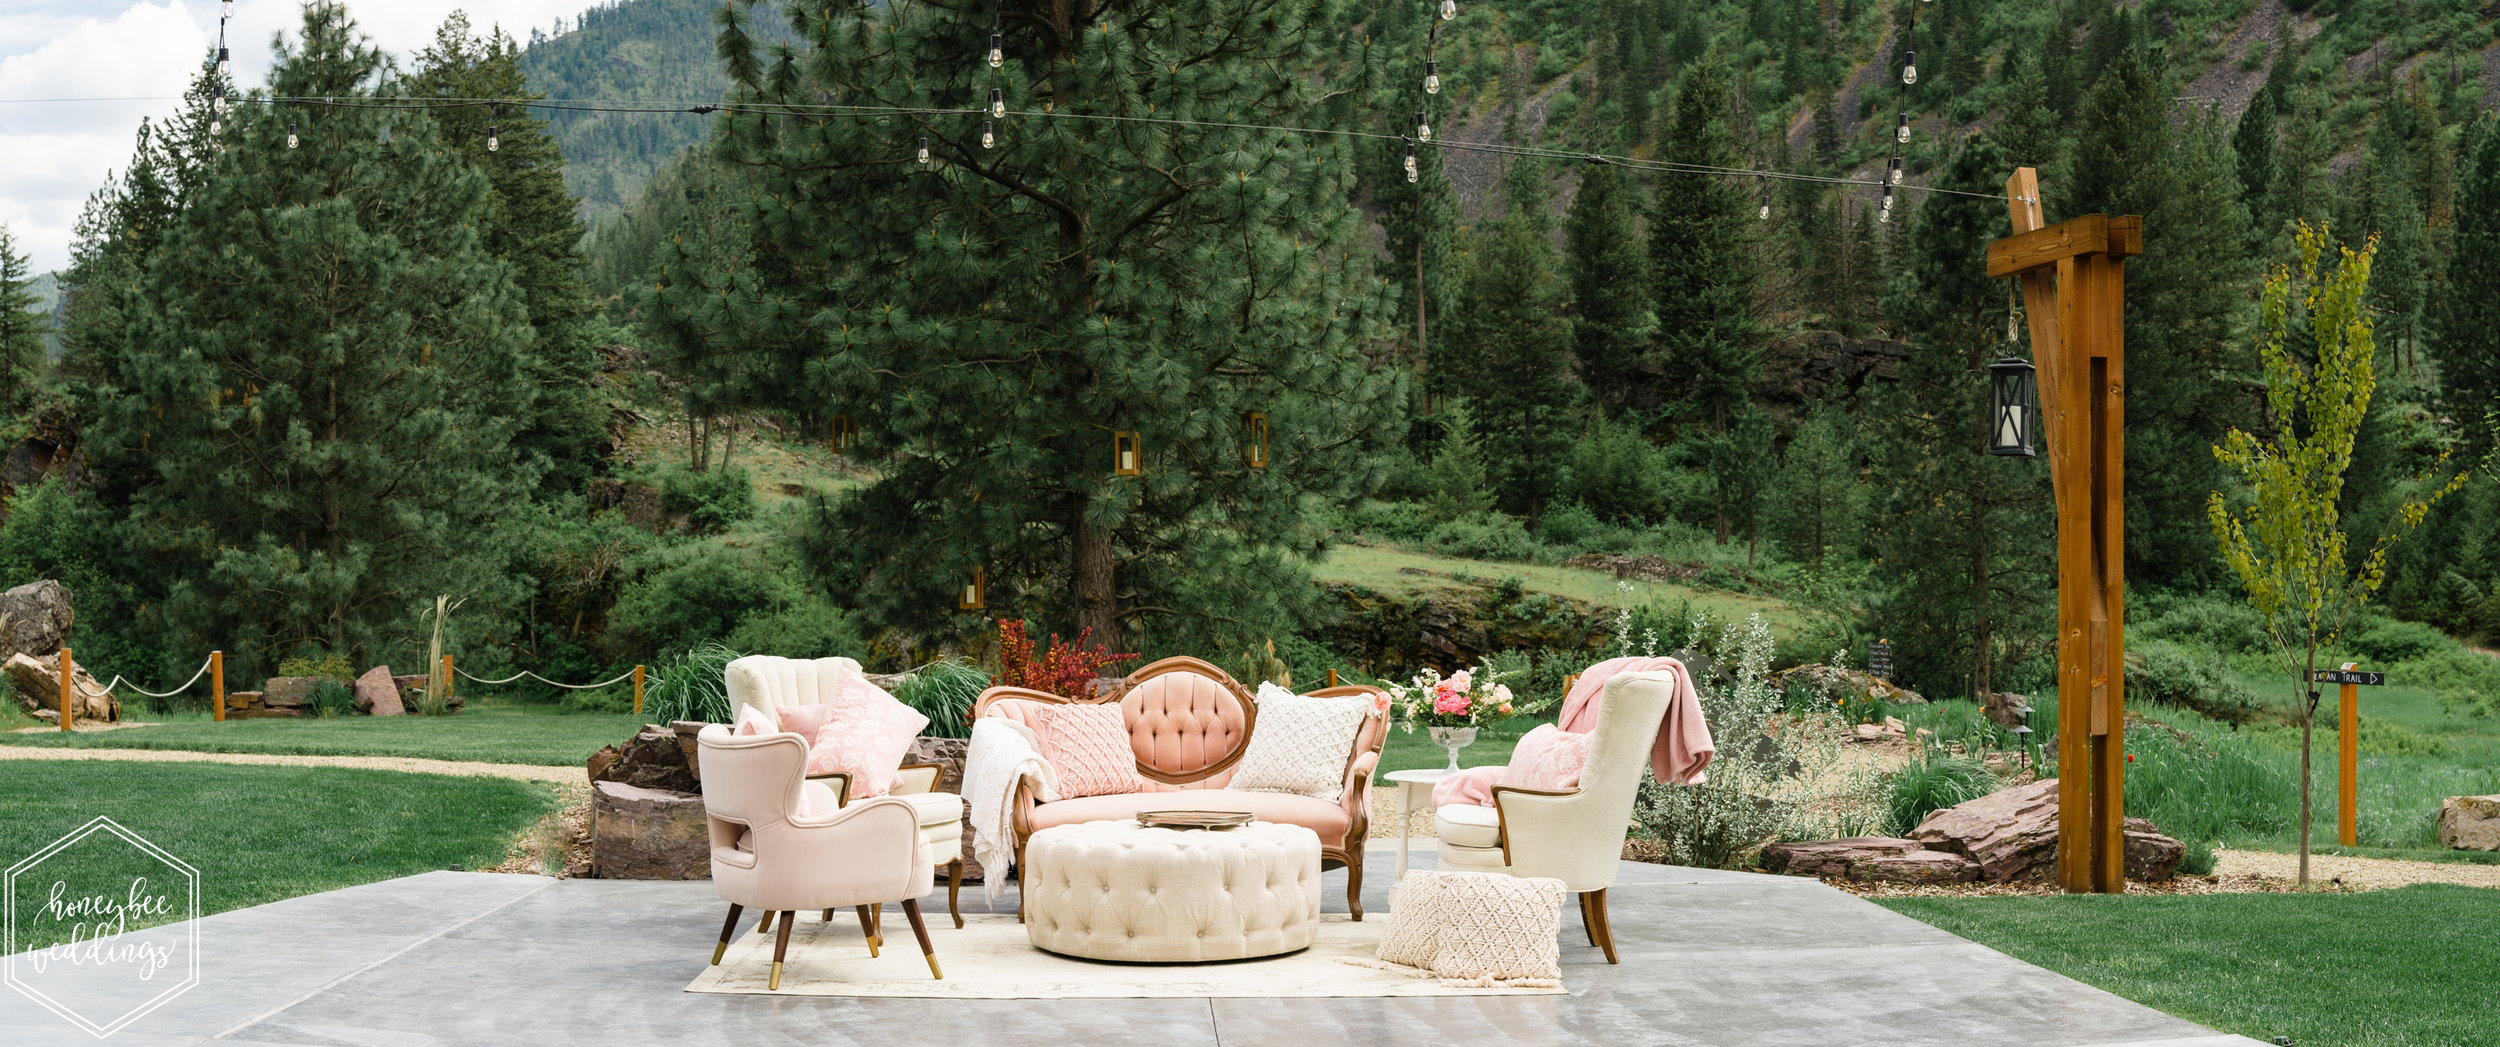 012Coral Mountain Wedding at White Raven_Honeybee Weddings_May 23, 2019-515-Pano.jpg